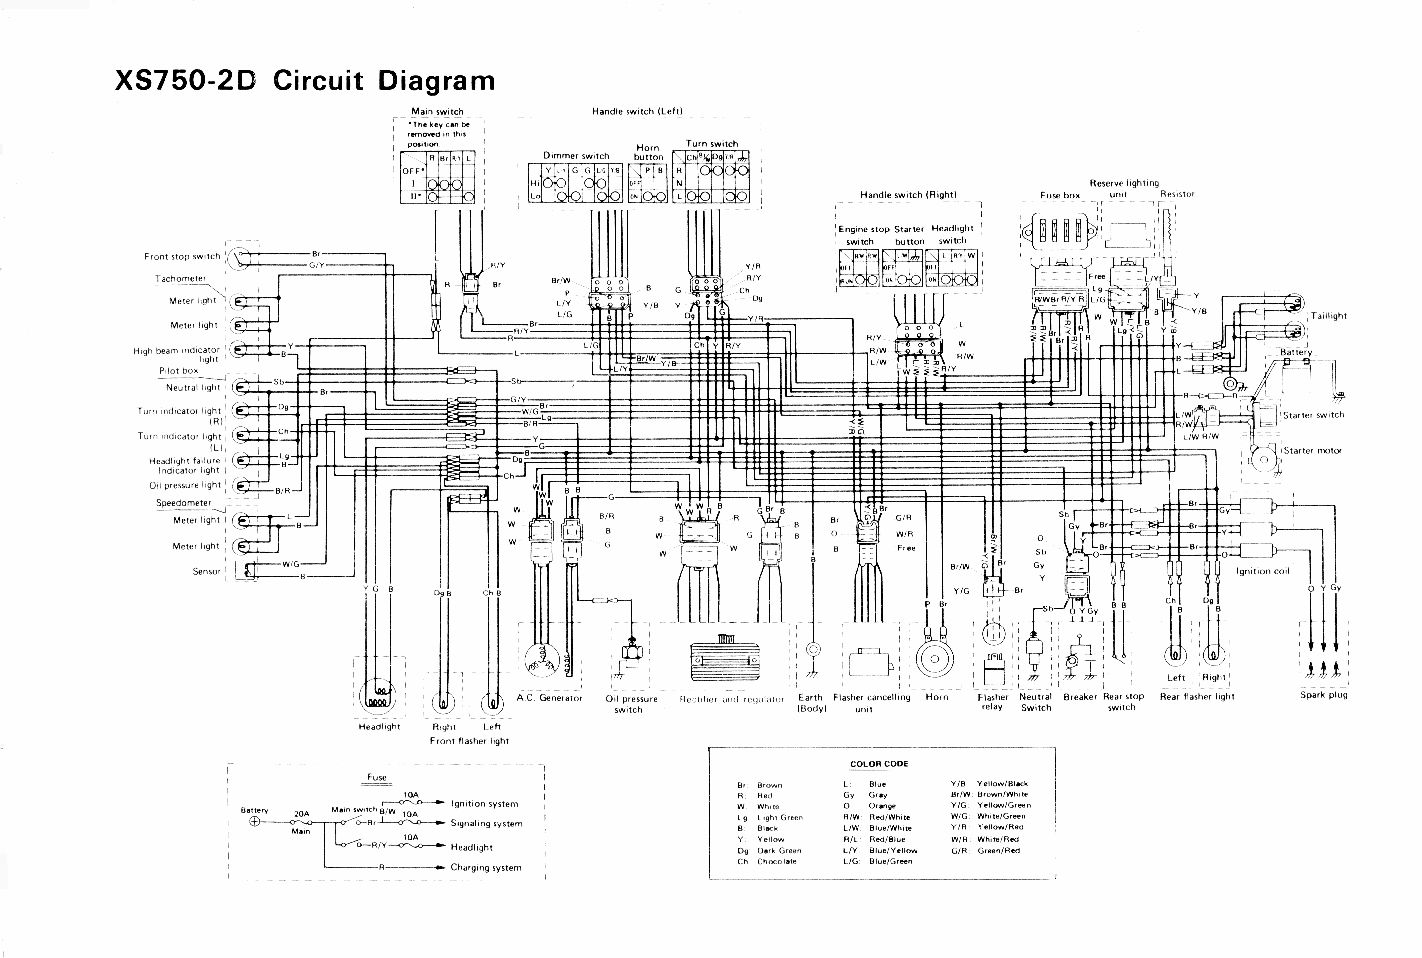 the yamaha triples community workshop electrical jvc wire harness wiring  diagram for the xs750 2d